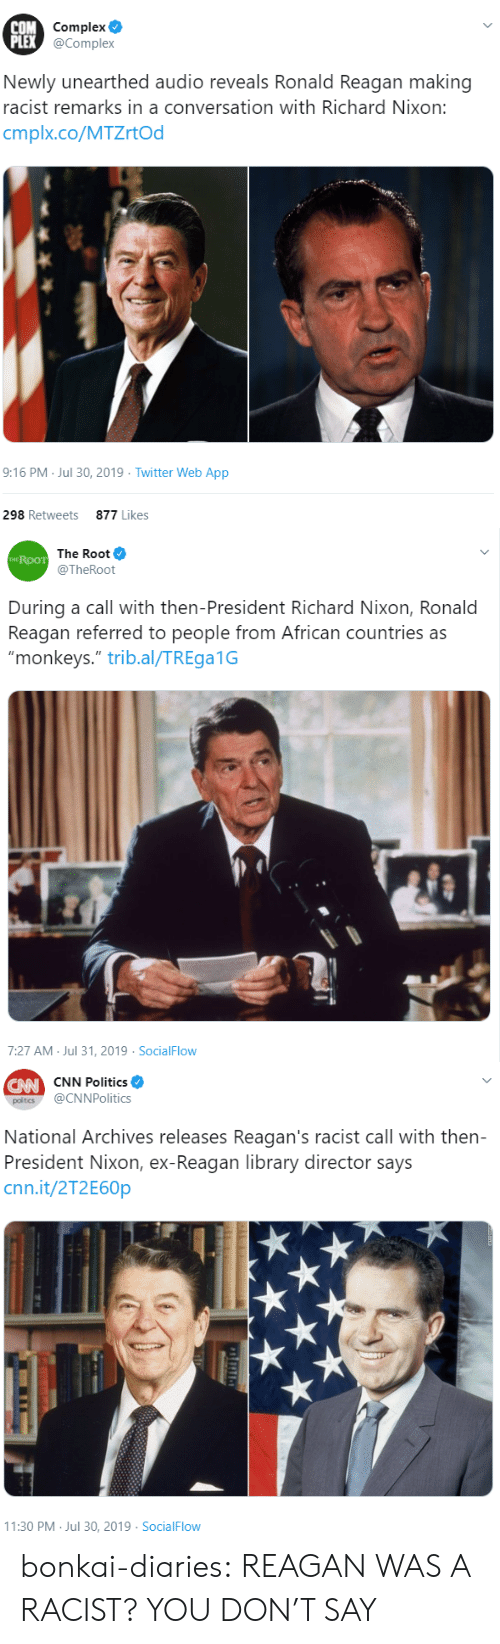 "monkeys: COM Complex  PLEX @Complex  Newly unearthed audio reveals Ronald Reagan making  racist remarks in a conversation with Richard Nixon:  cmplx.co/MTZrtOd  9:16 PM Jul 30, 2019 Twitter Web App  298 Retweets  877 Likes   The Root  THE ROOT  @TheRoot  During a call with then-President Richard Nixon, Ronald  Reagan referred to people from African countries as  ""monkeys."" trib.al/TREga1G  7:27 AM Jul 31, 2019 SocialFlow   CW CNN Politics  @CNNPolitics  poltics  National Archives releases Reagan's racist call with then-  President Nixon, ex-Reagan library director says  cnn.it/2T2E60P  11:30 PM Jul 30, 2019 SocialFlow bonkai-diaries:  REAGAN WAS A RACIST? YOU DON'T SAY"